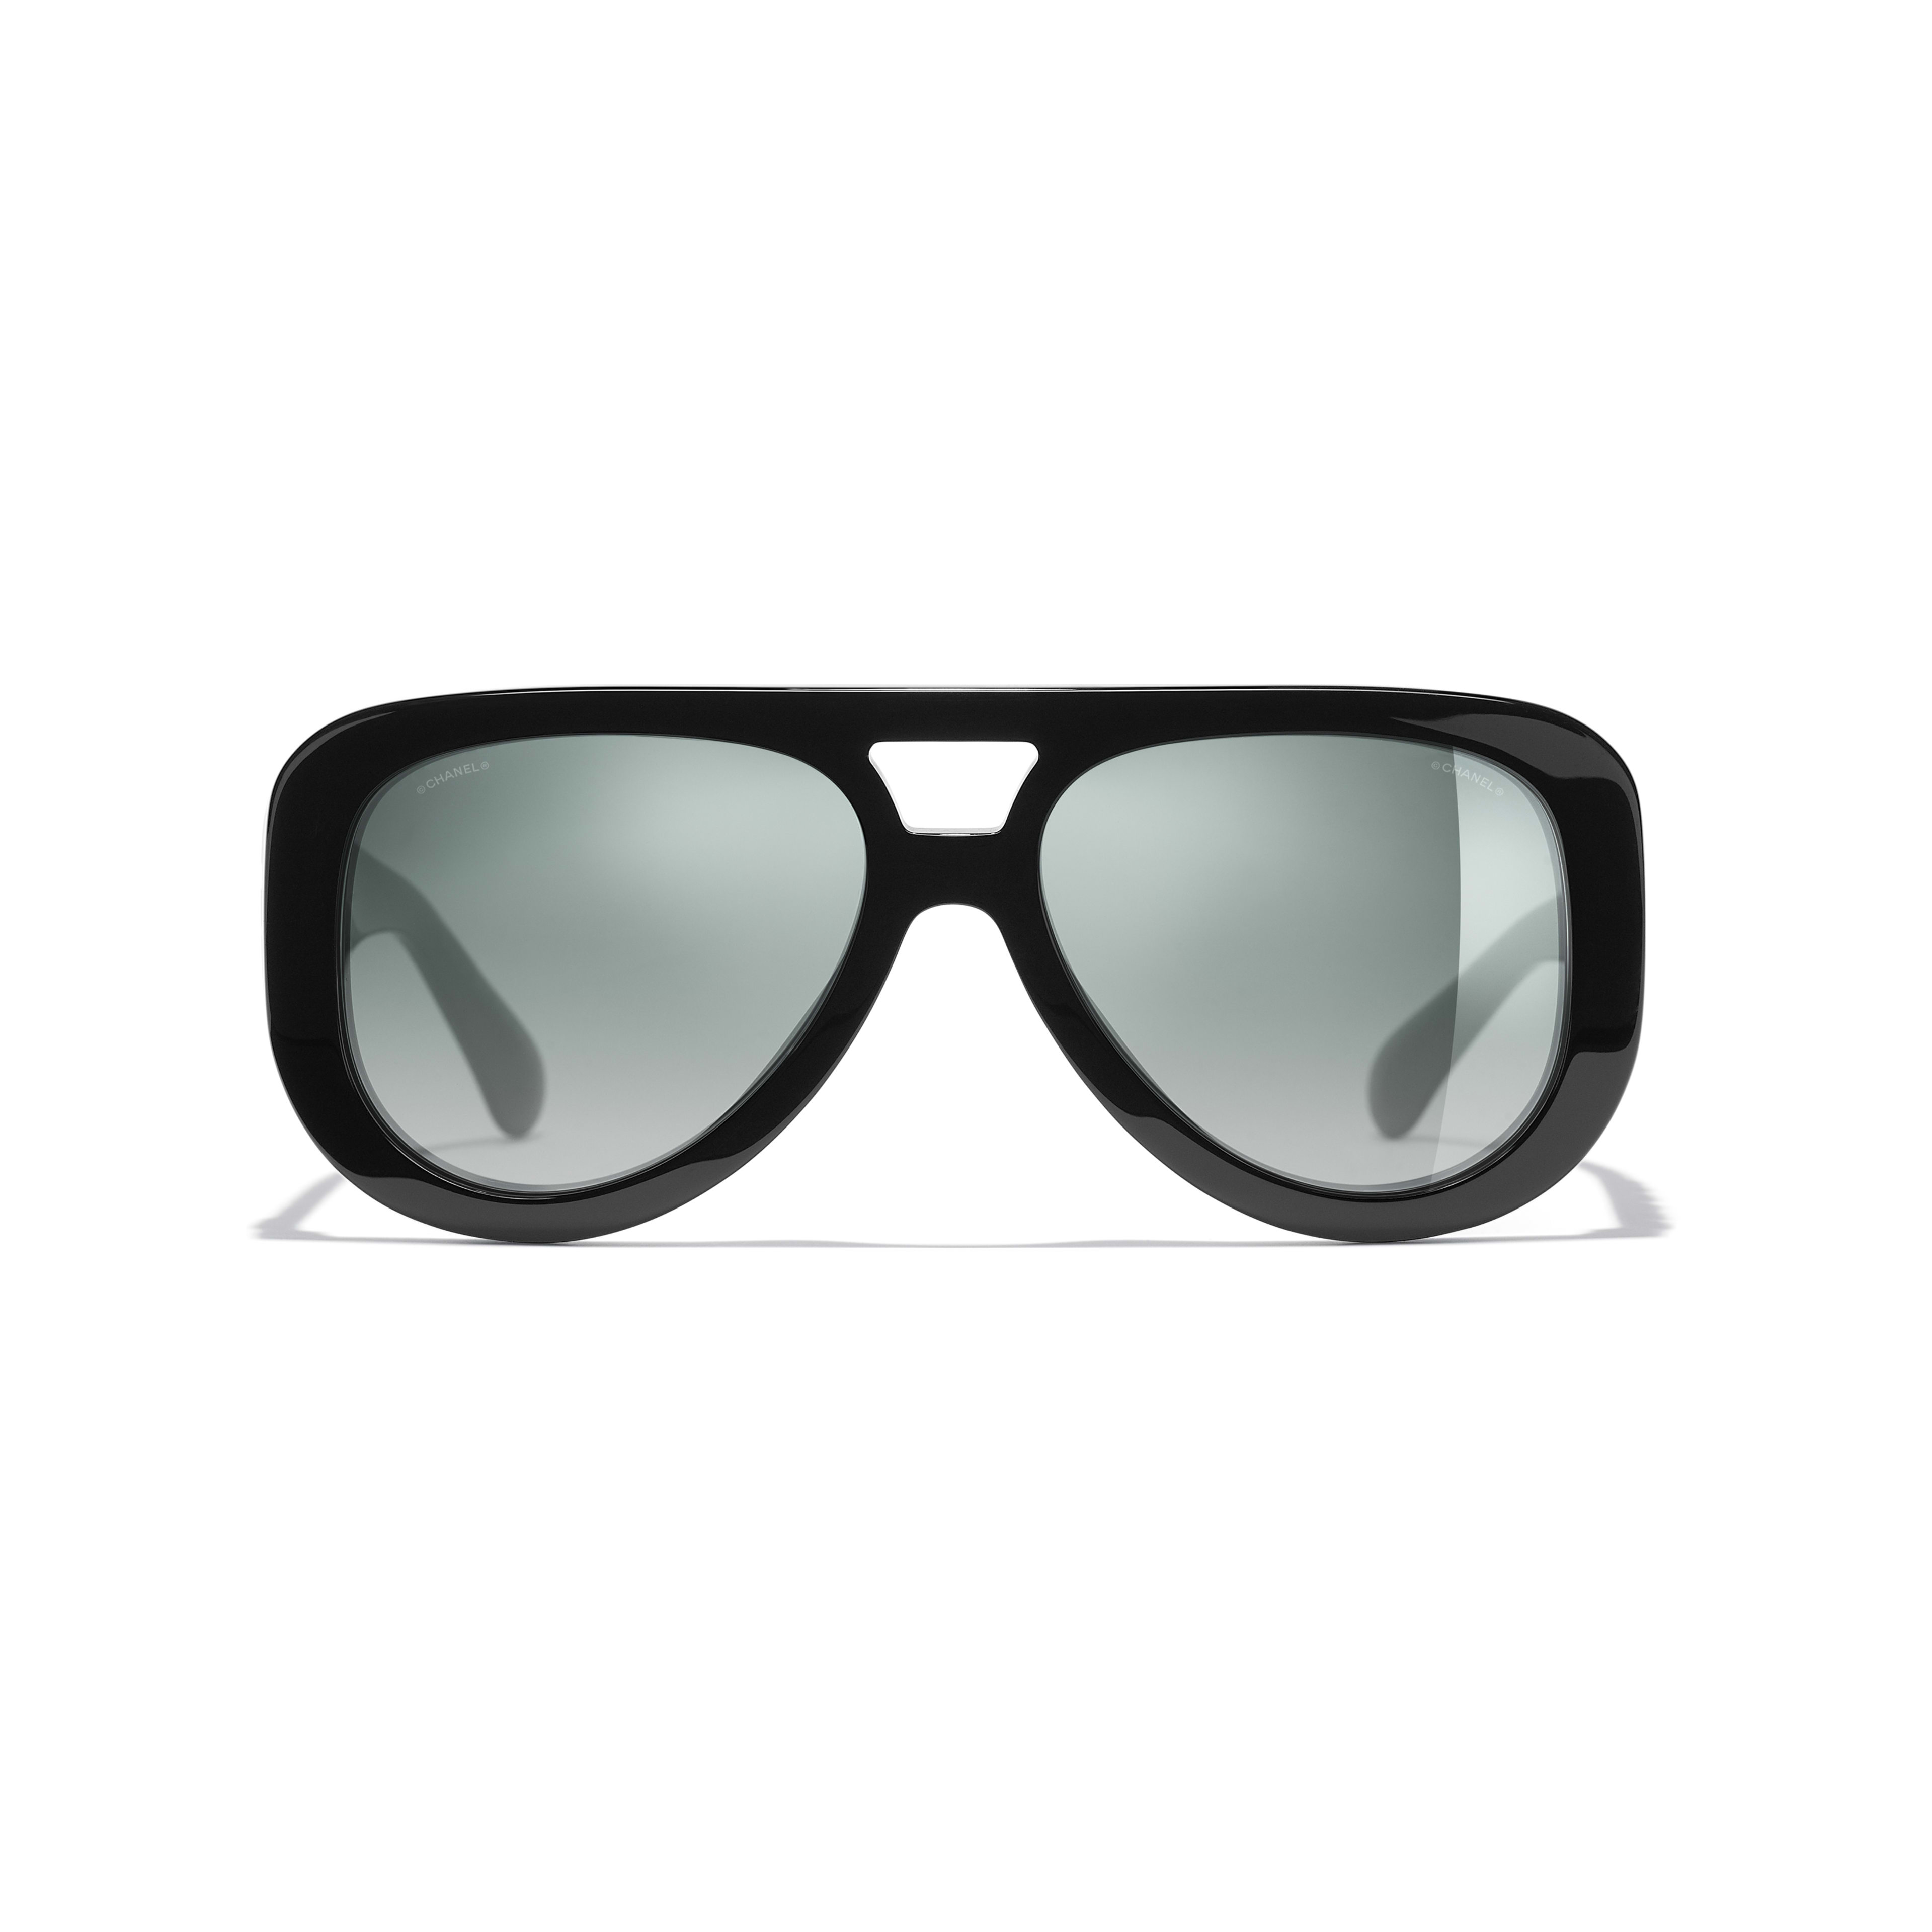 Pilot Sunglasses - Black - Acetate & Diamanté - CHANEL - Alternative view - see standard sized version